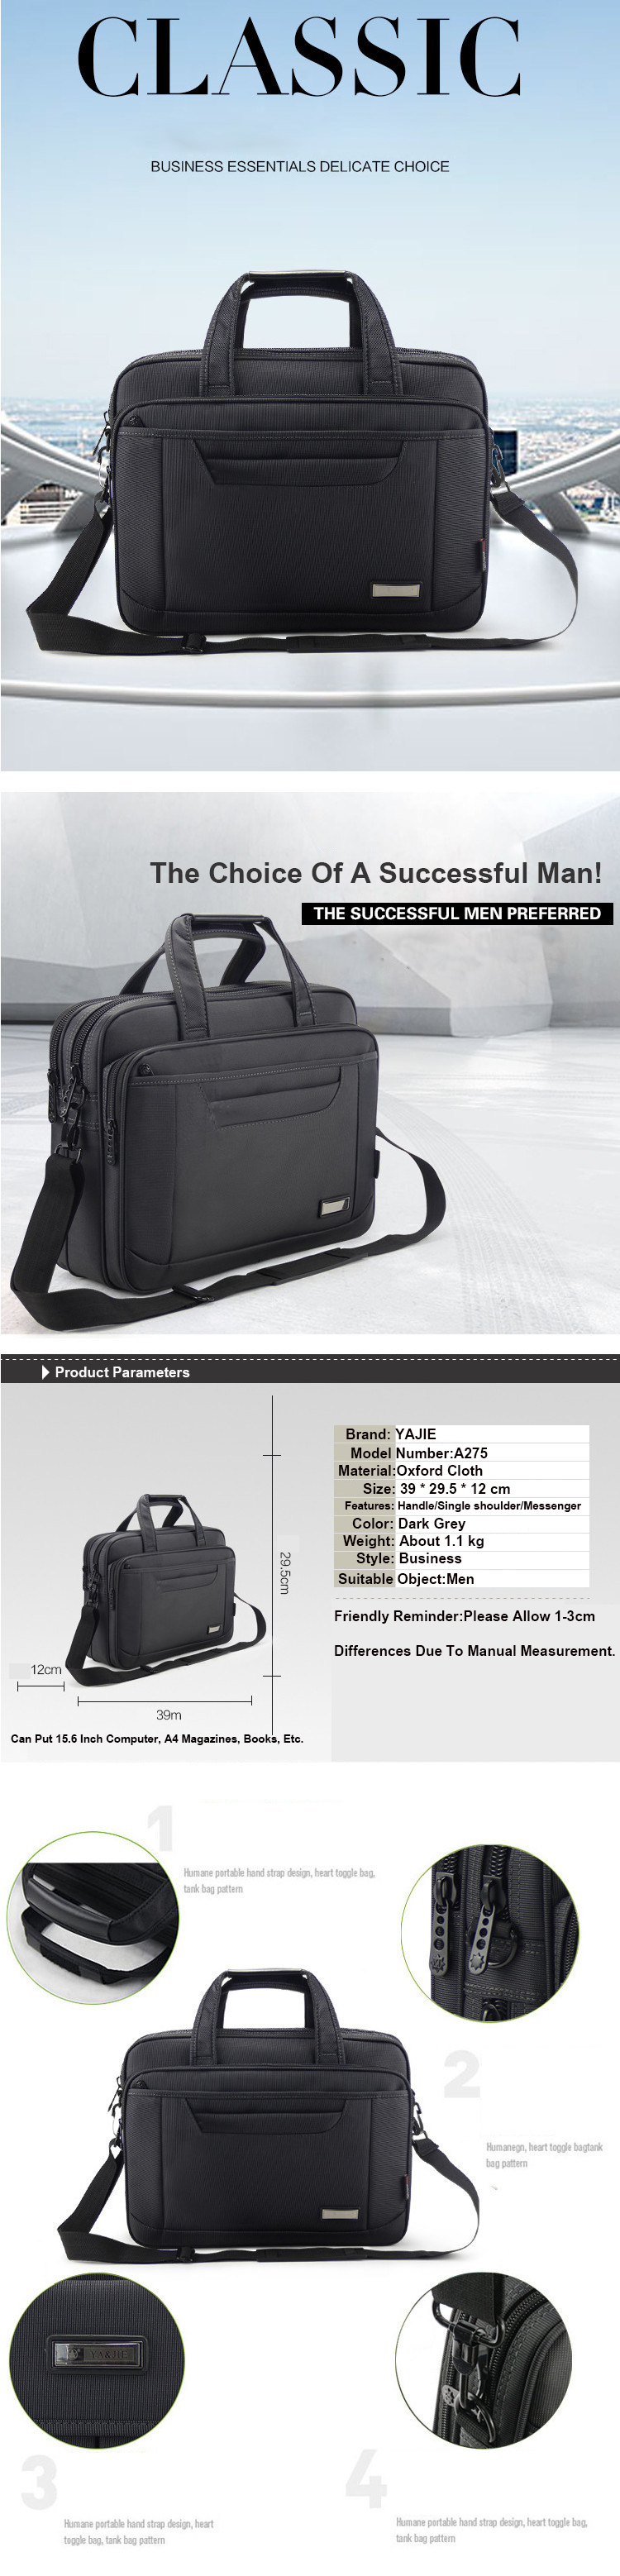 Hec466d1814024653906afbfb8a5932e5C - OYIXINGER Briefcase Lawyer Men Computer Hand Bags Luxury Brand Mens Business Bag Oxford Waterproof Office Work For Maletas